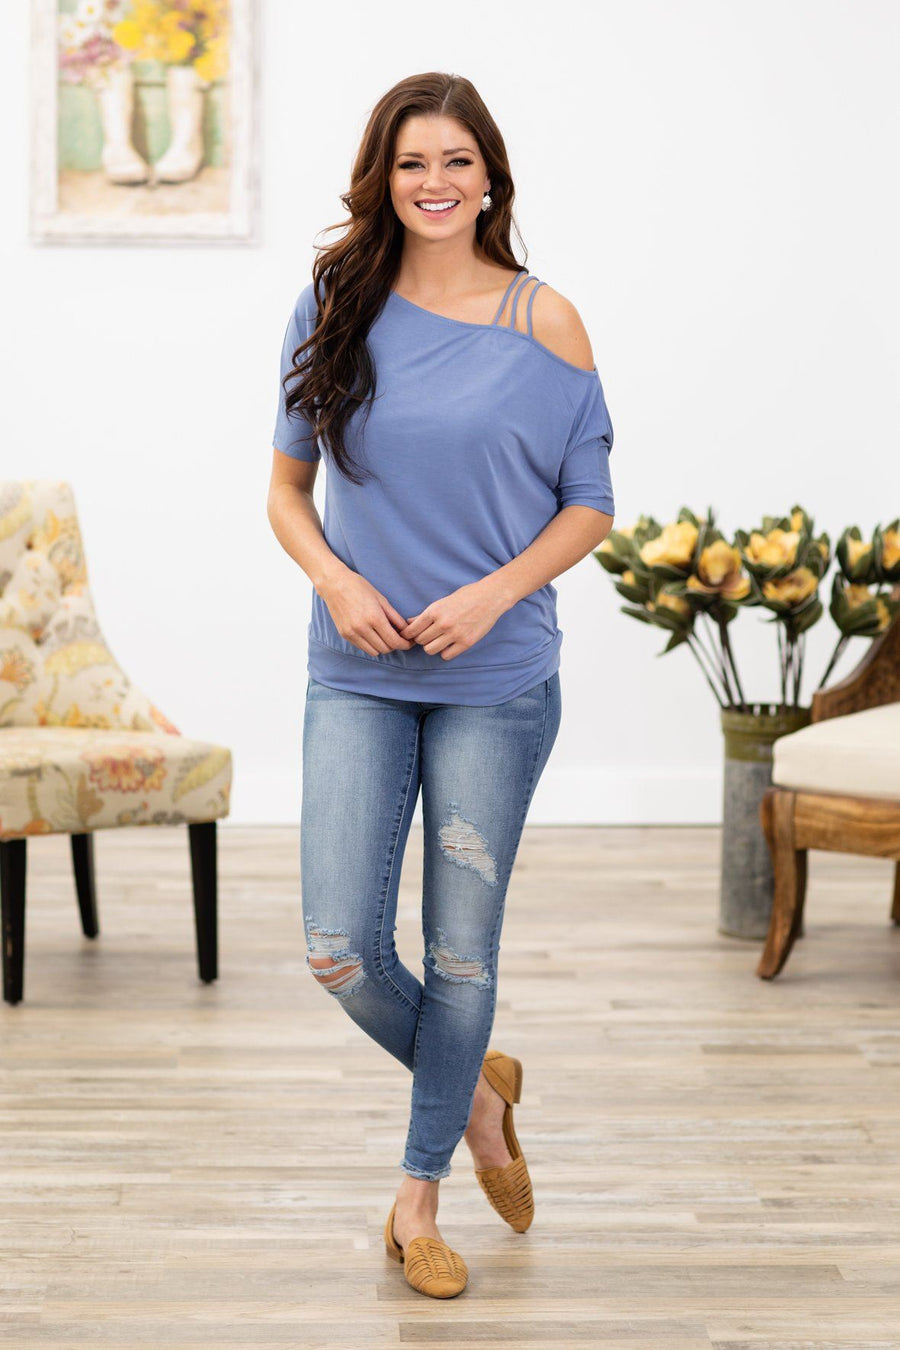 ec64b34eb1302 Get You Out of My Head Short Sleeve Strappy Cold Shoulder Top in Periwinkle